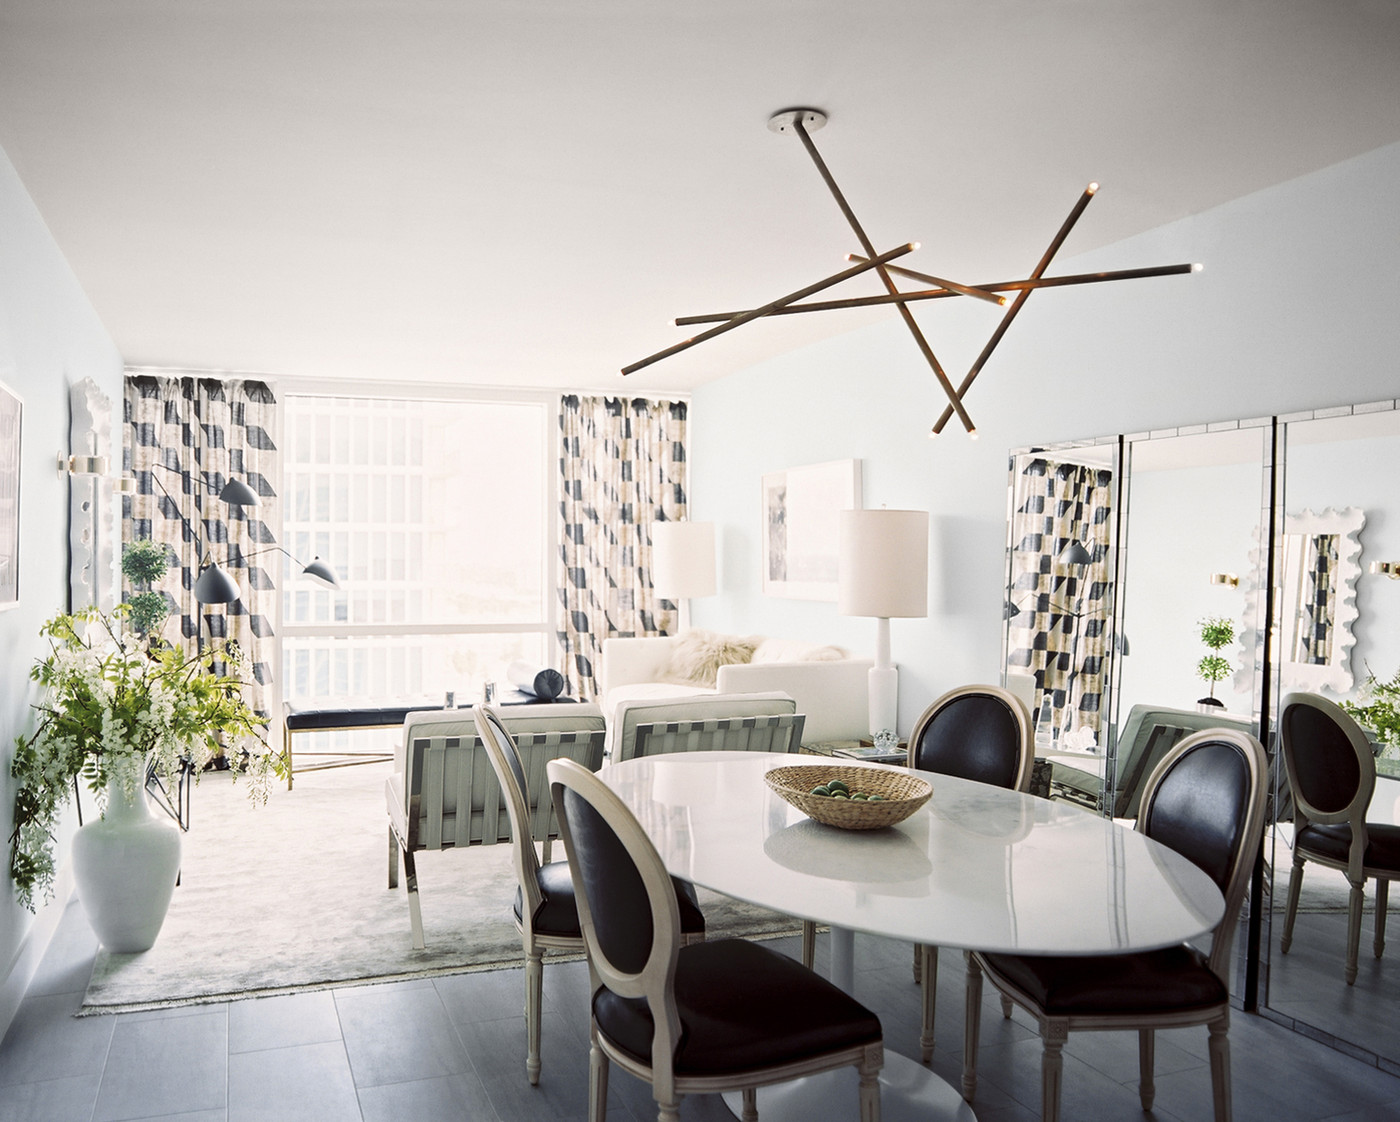 Modern Ceiling Light Fixture Photos, Design, Ideas, Remodel, And Decor    Lonny